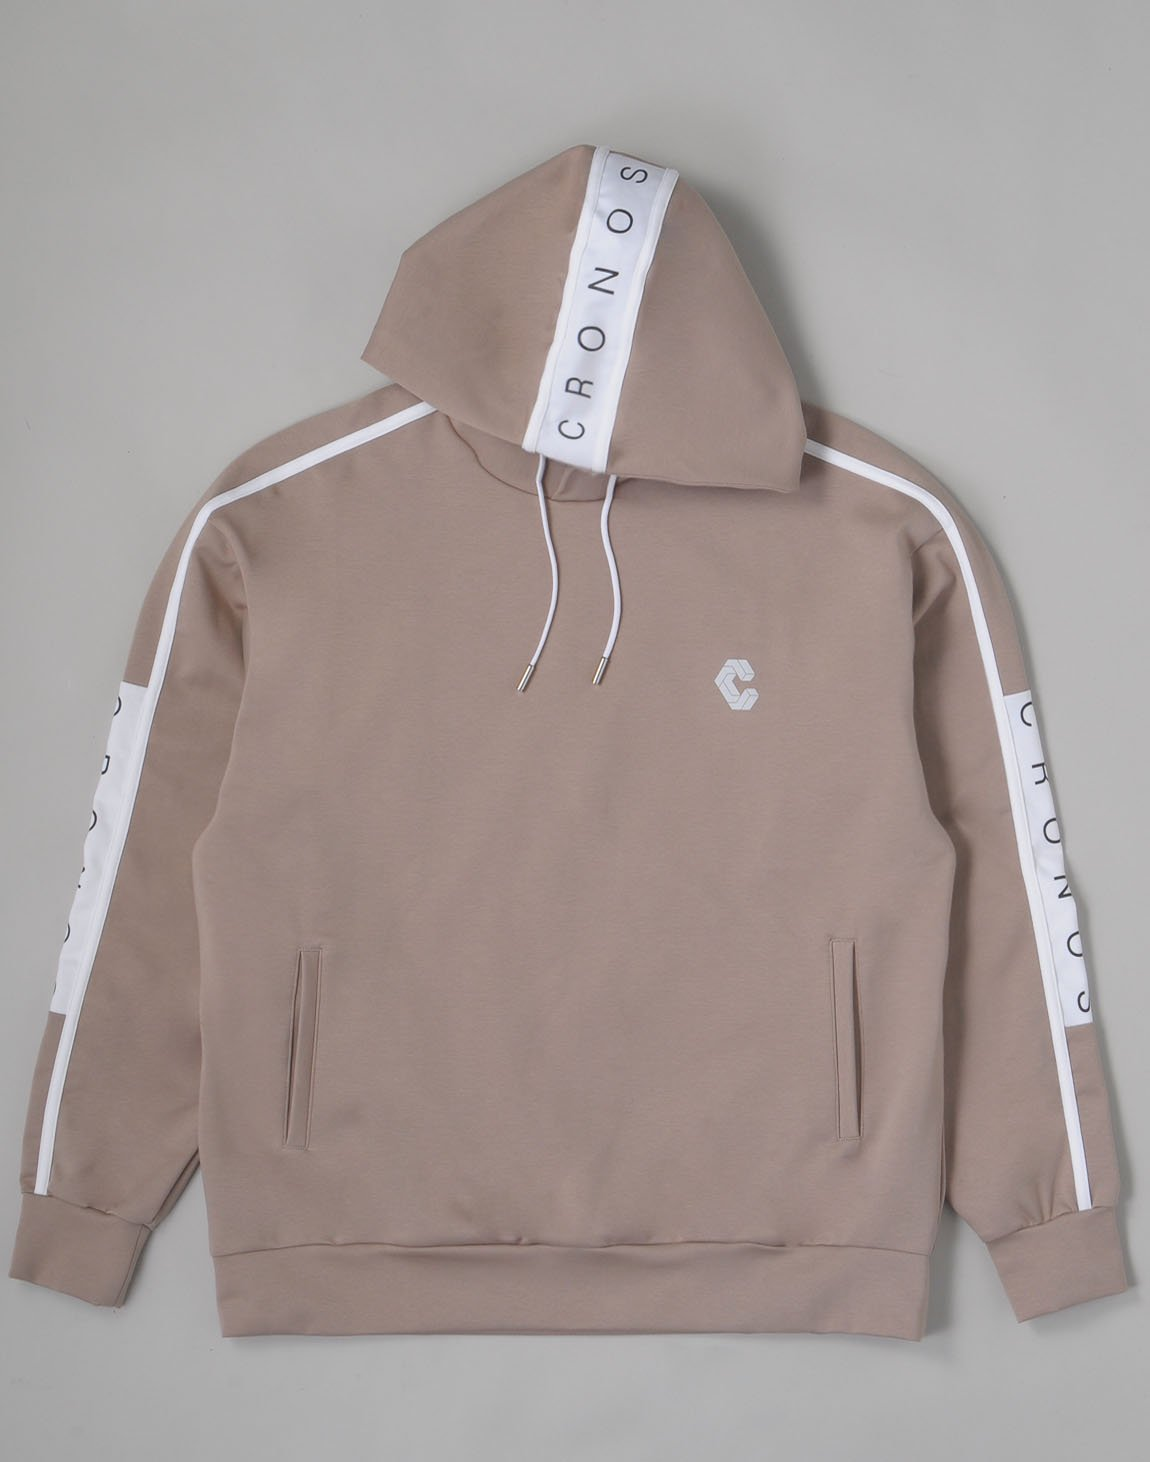 <img class='new_mark_img1' src='https://img.shop-pro.jp/img/new/icons1.gif' style='border:none;display:inline;margin:0px;padding:0px;width:auto;' />CRONOS ARM LINE LOGO HOODIE【BEIGExWHITE】